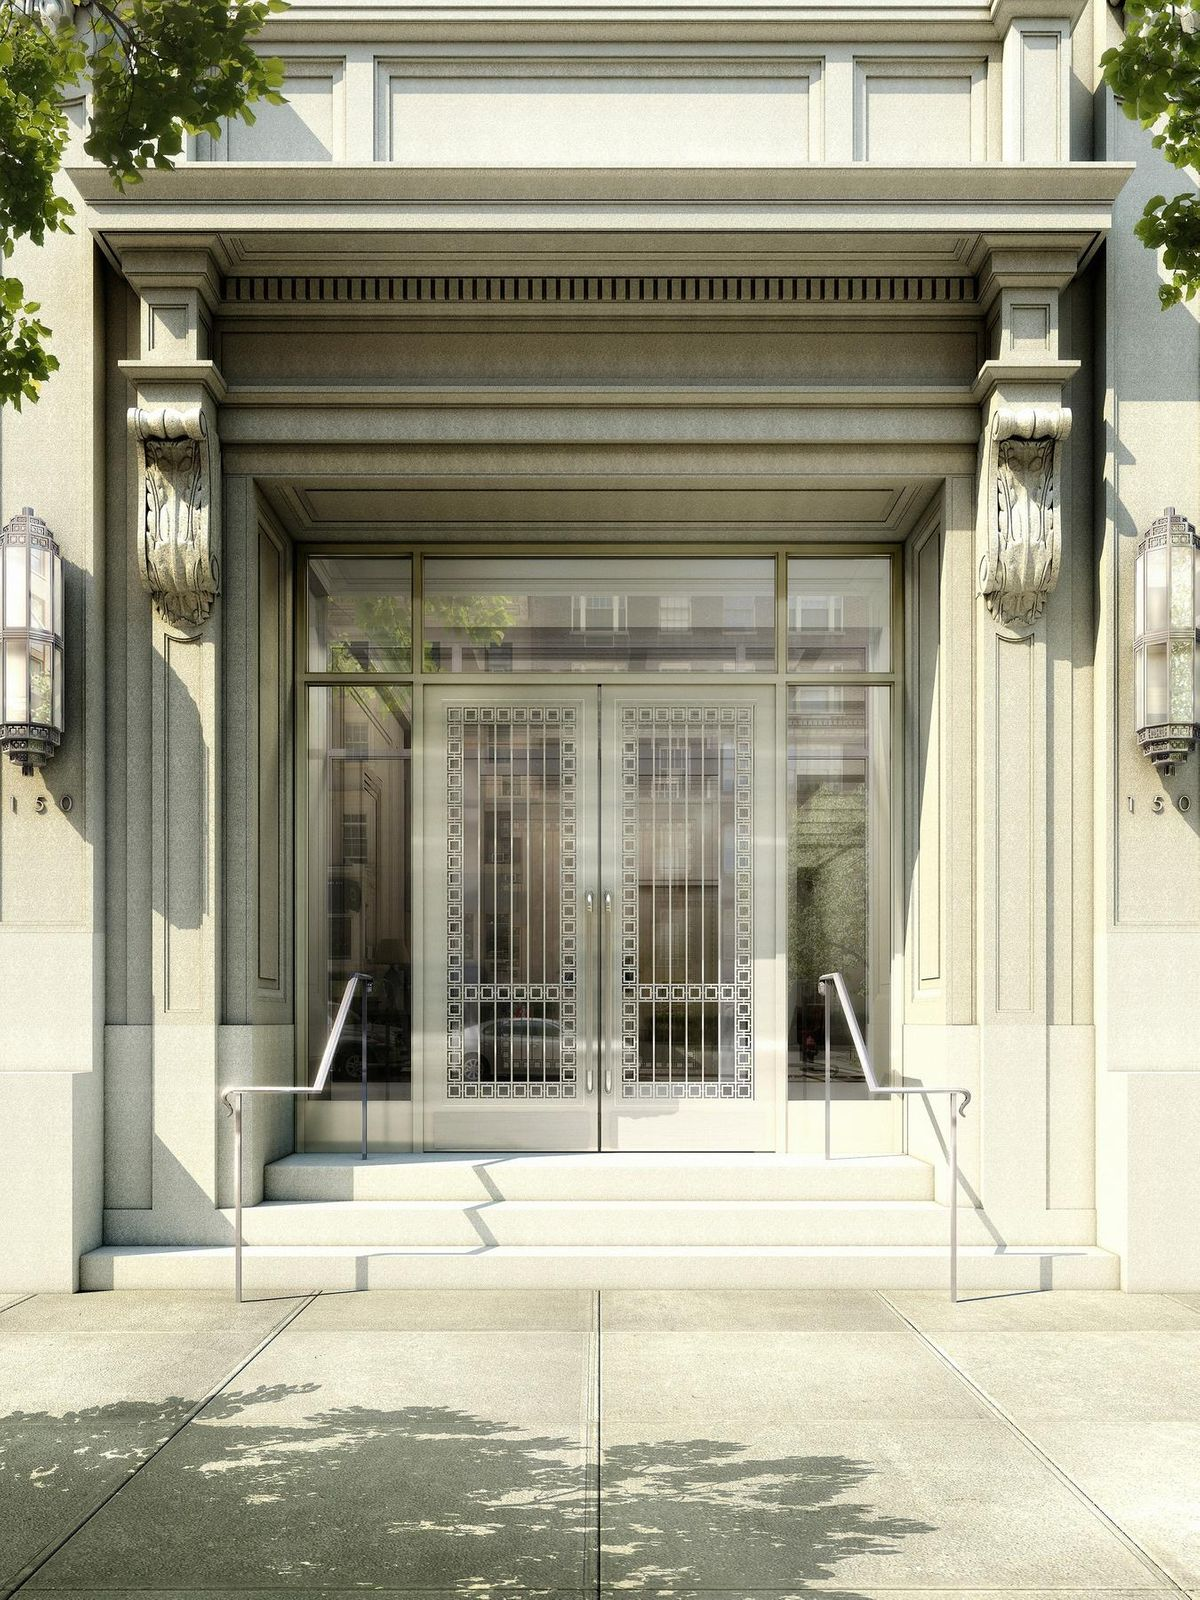 150 East 72nd Street, North Penthouse , New York NY Condominium - New York City Real Estate